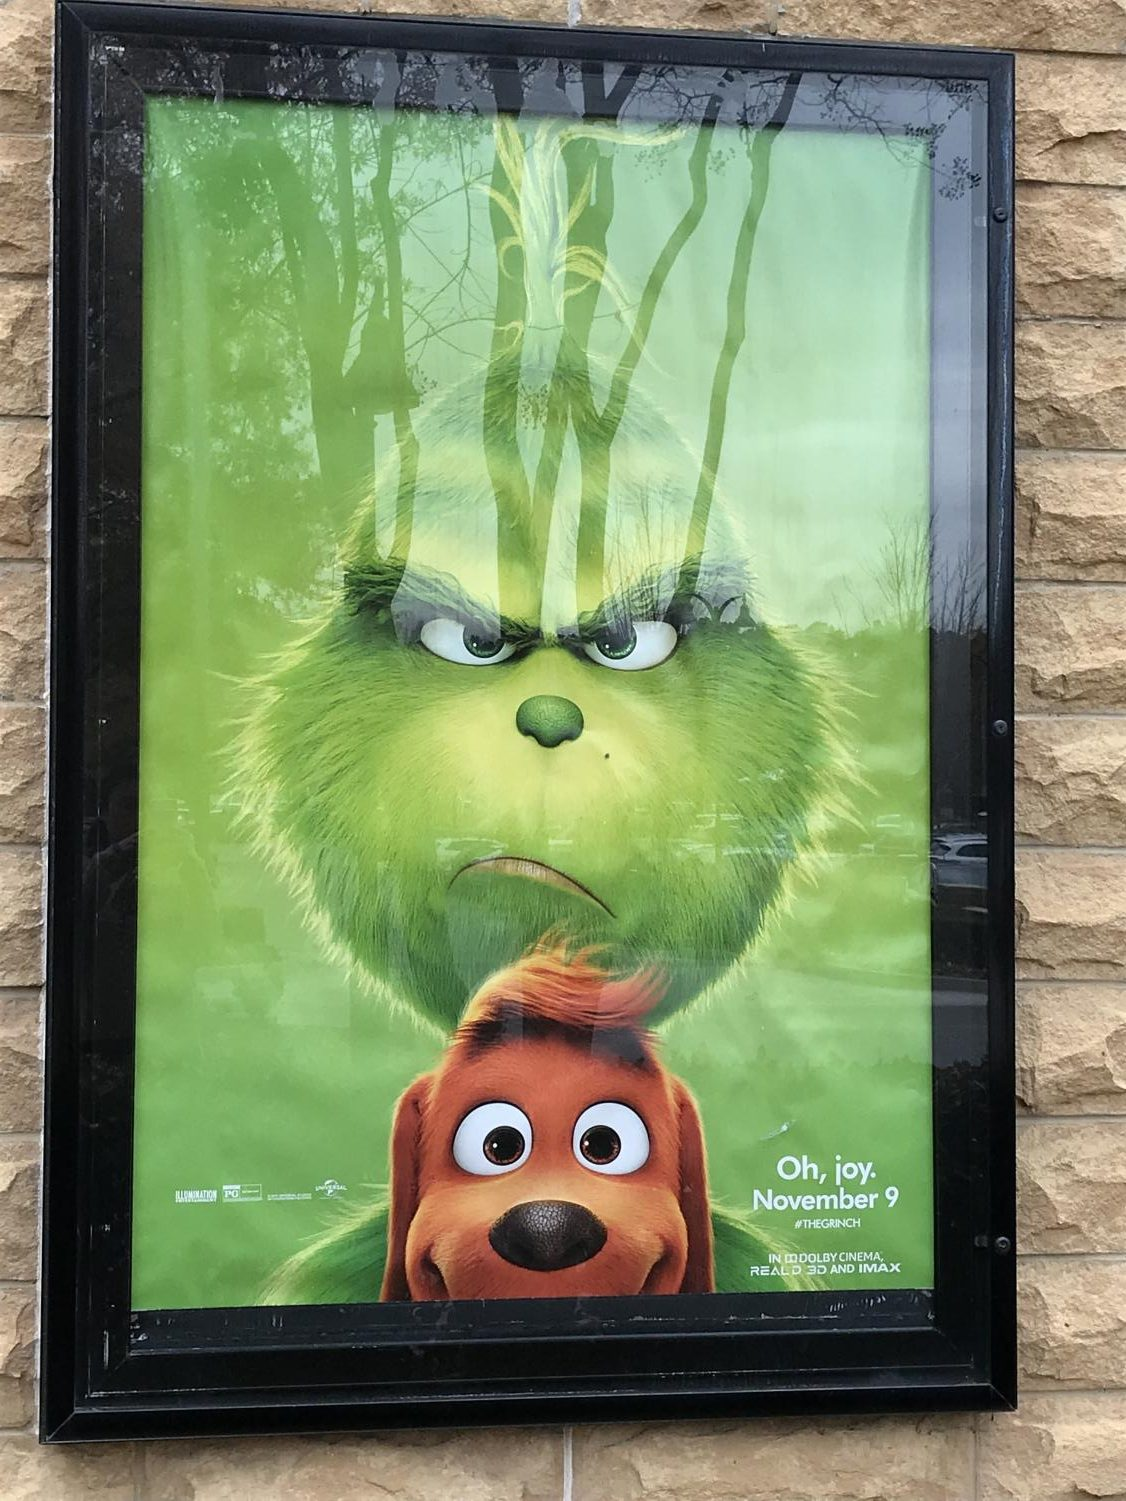 How The Grinch Stole Christmas 1966 Movie Poster.The Bird Feed Stealing The Show The Latest Adaptation Of